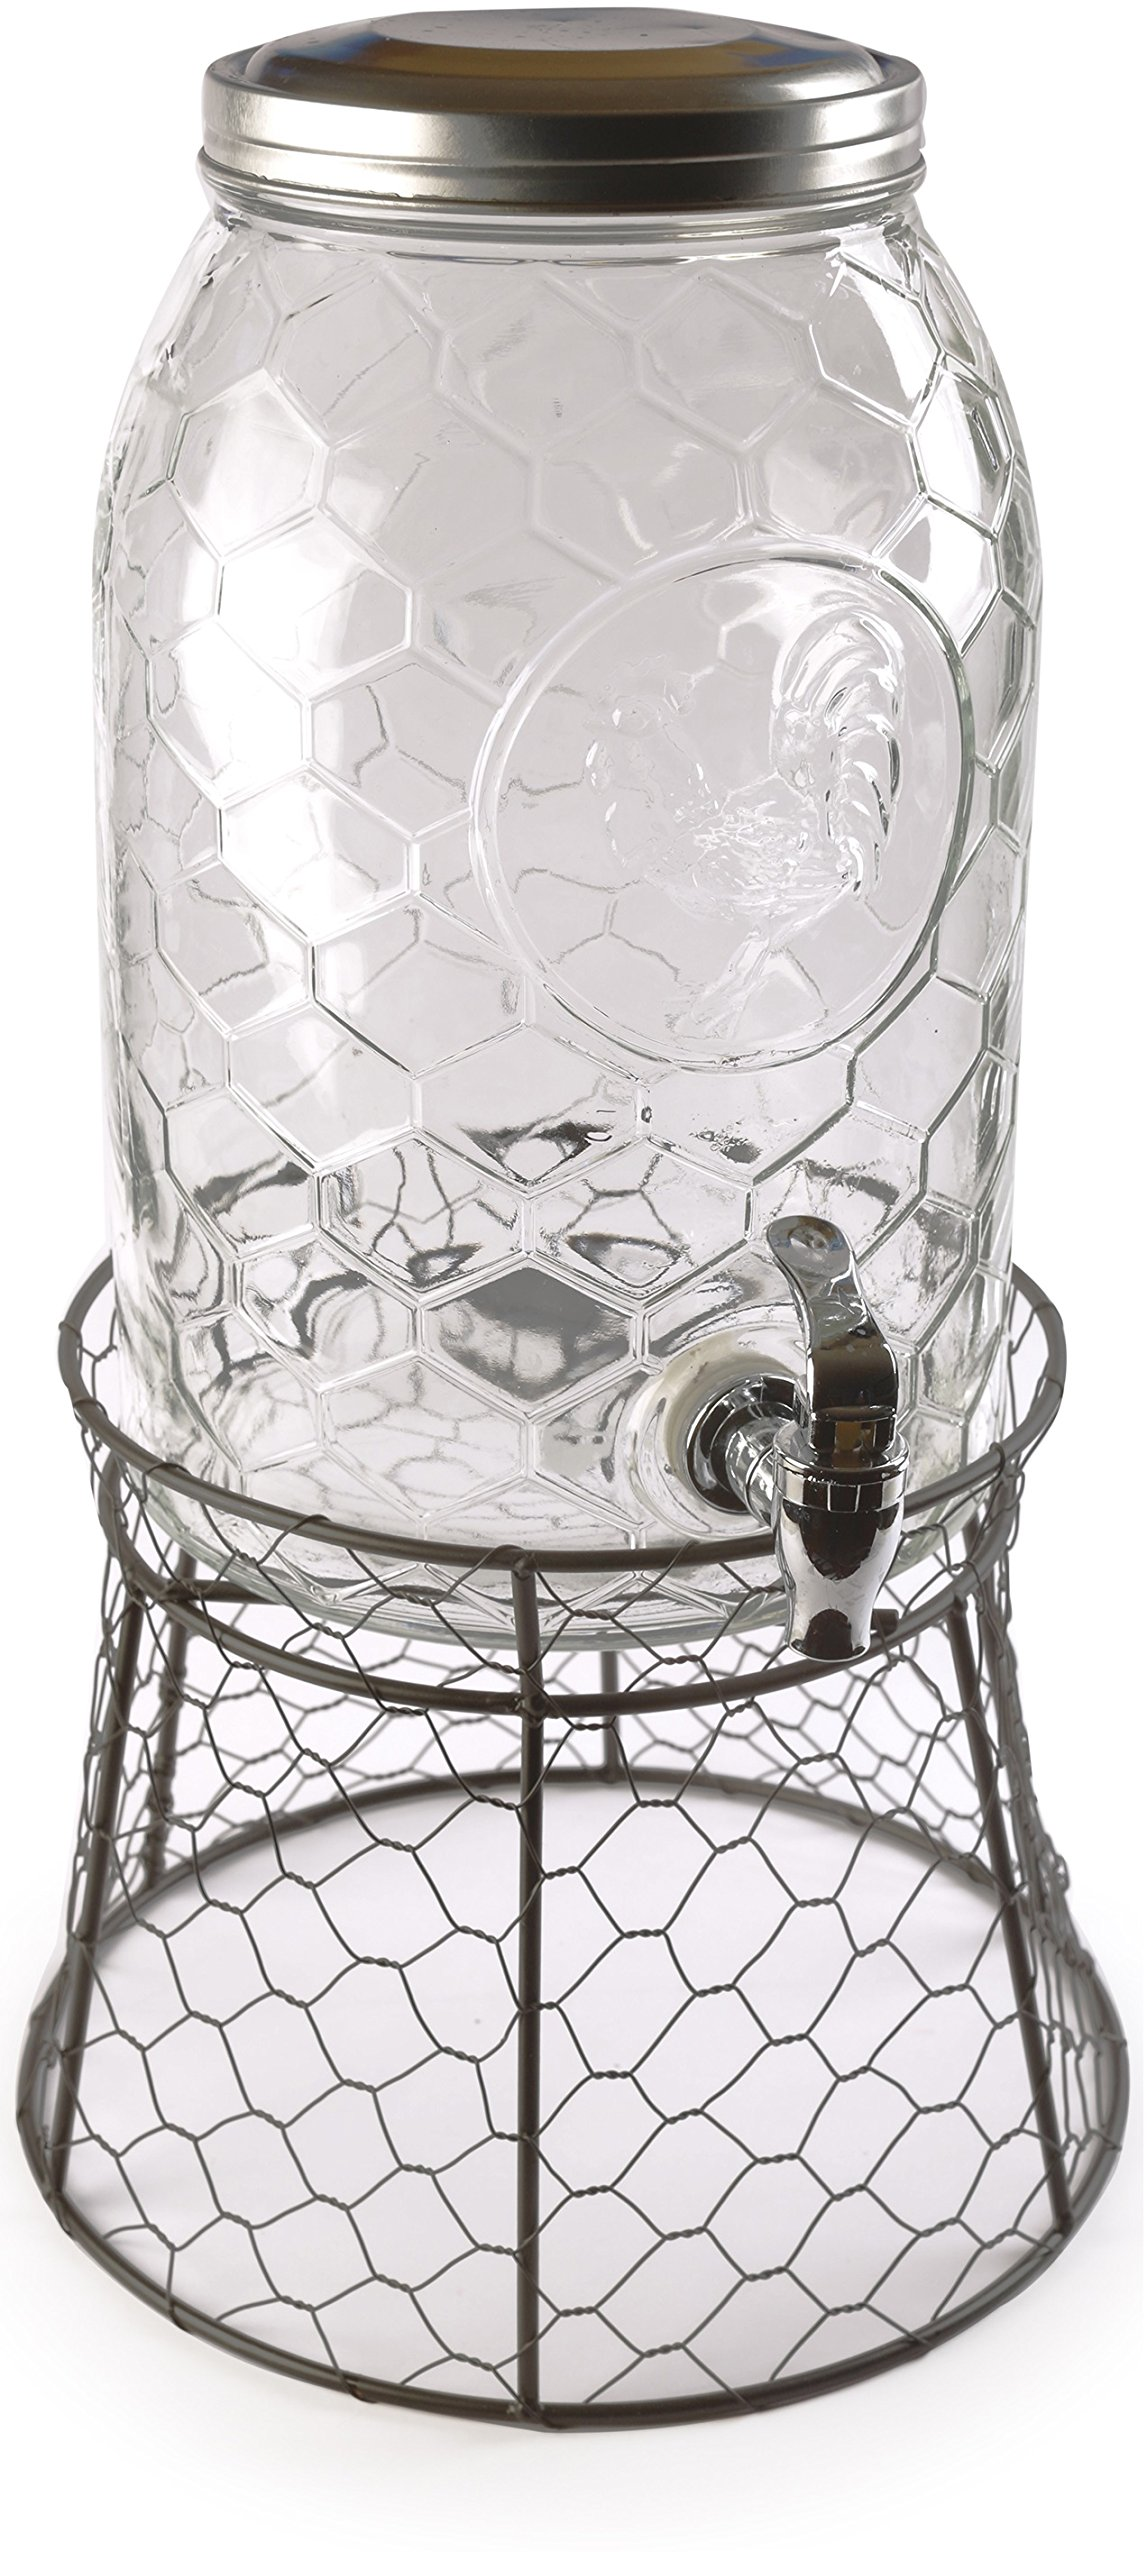 Circleware 69142 Rooster Glass Beverage Drink Dispenser with Stand and Metal Lid Glassware for Water, Iced Tea Kombucha, Punch and All Type of Cold, 1.5 gallon